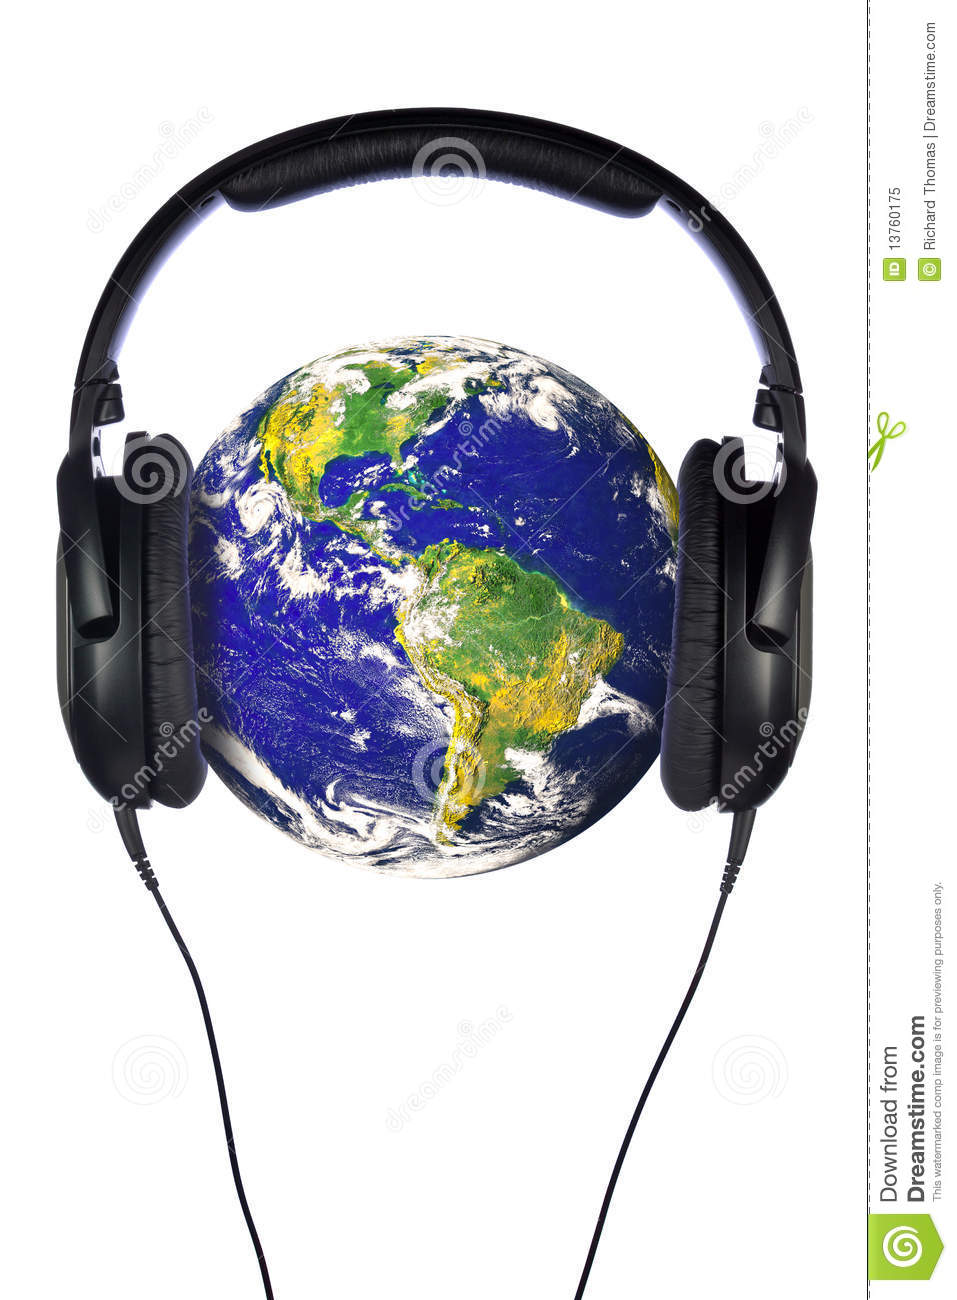 Headphones On The World Stock Image. Image Of Musical